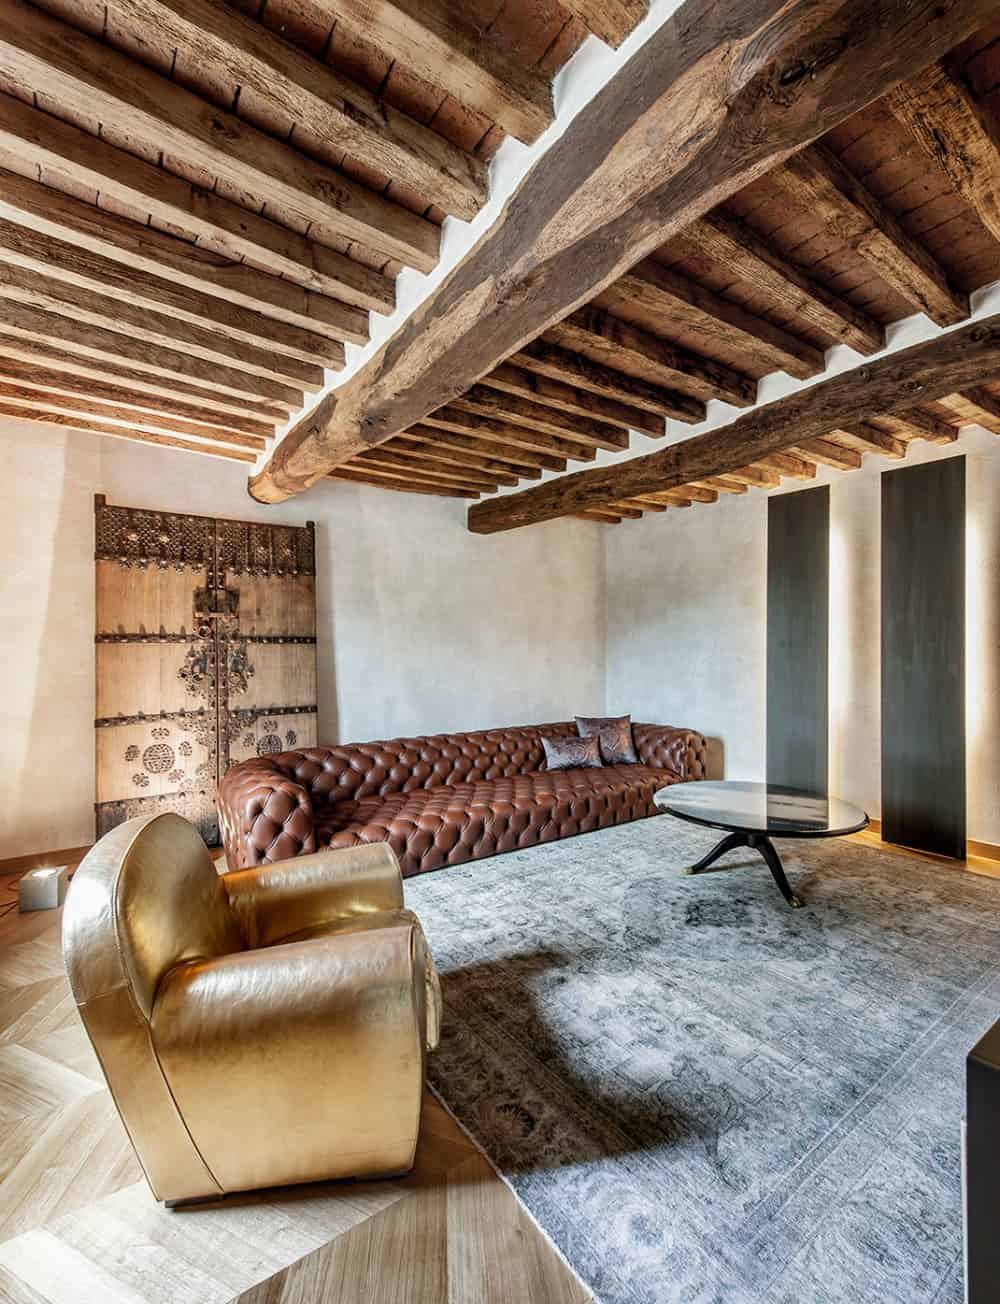 Old ornamental wooden door serves as the backdrop for the sofa